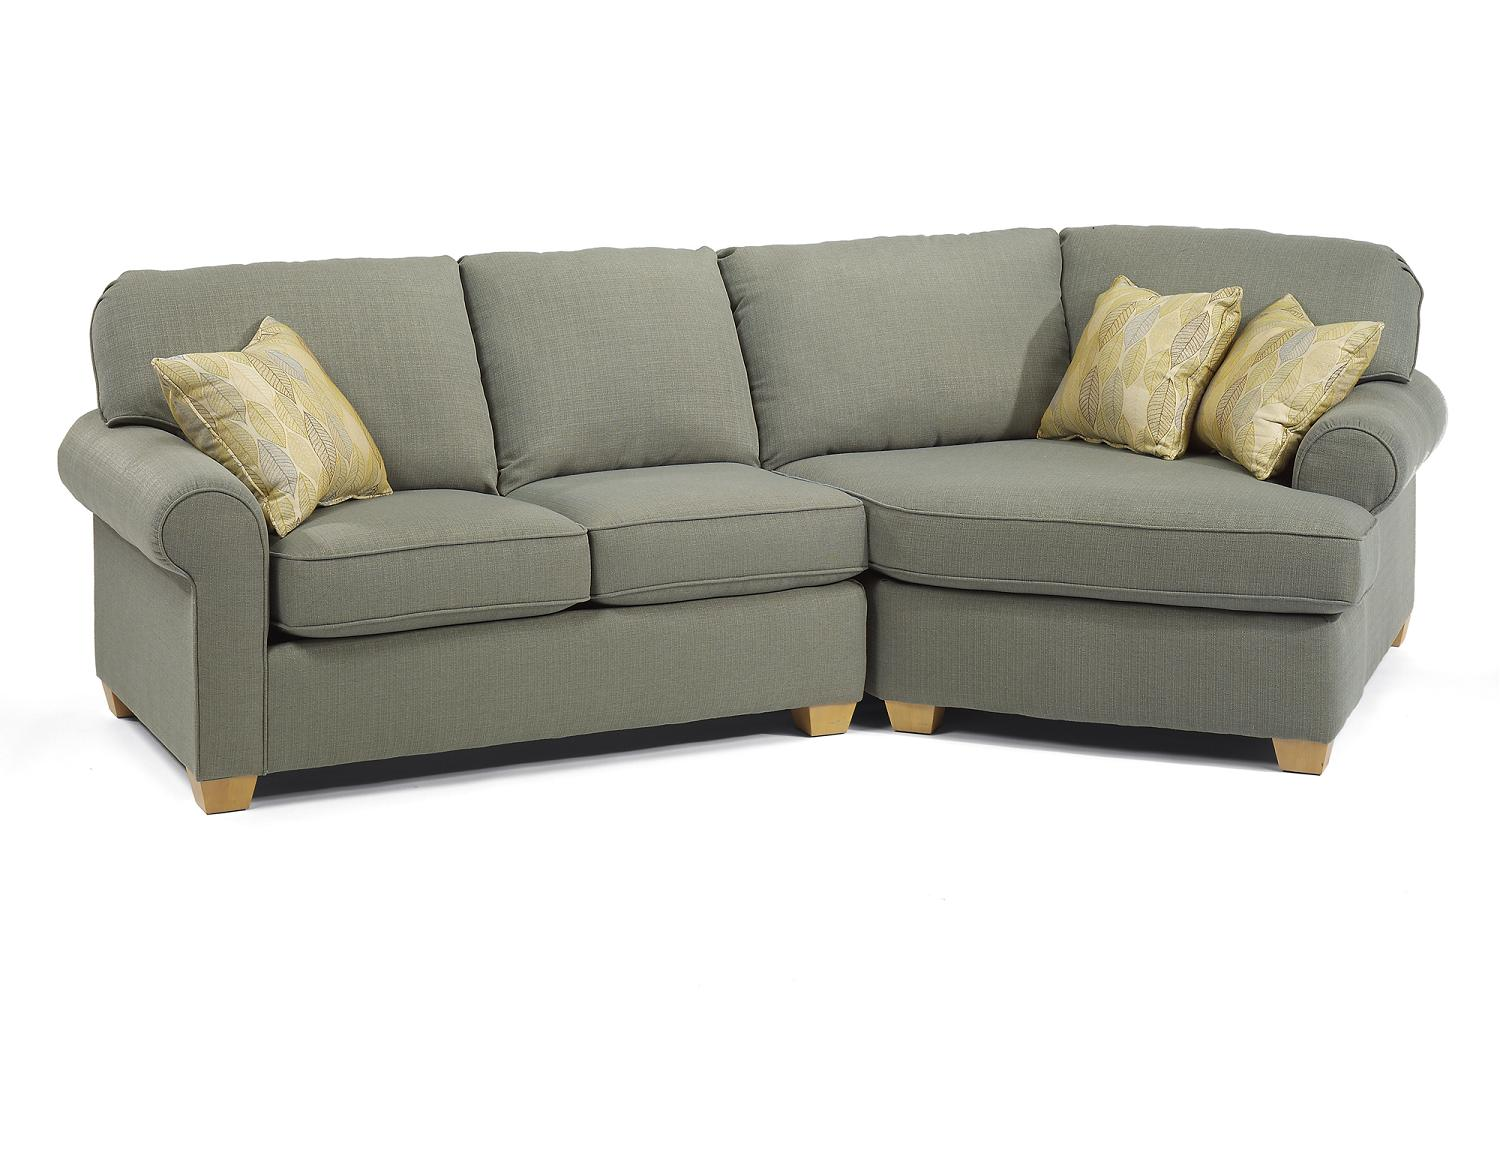 Cheap Couches Under 100